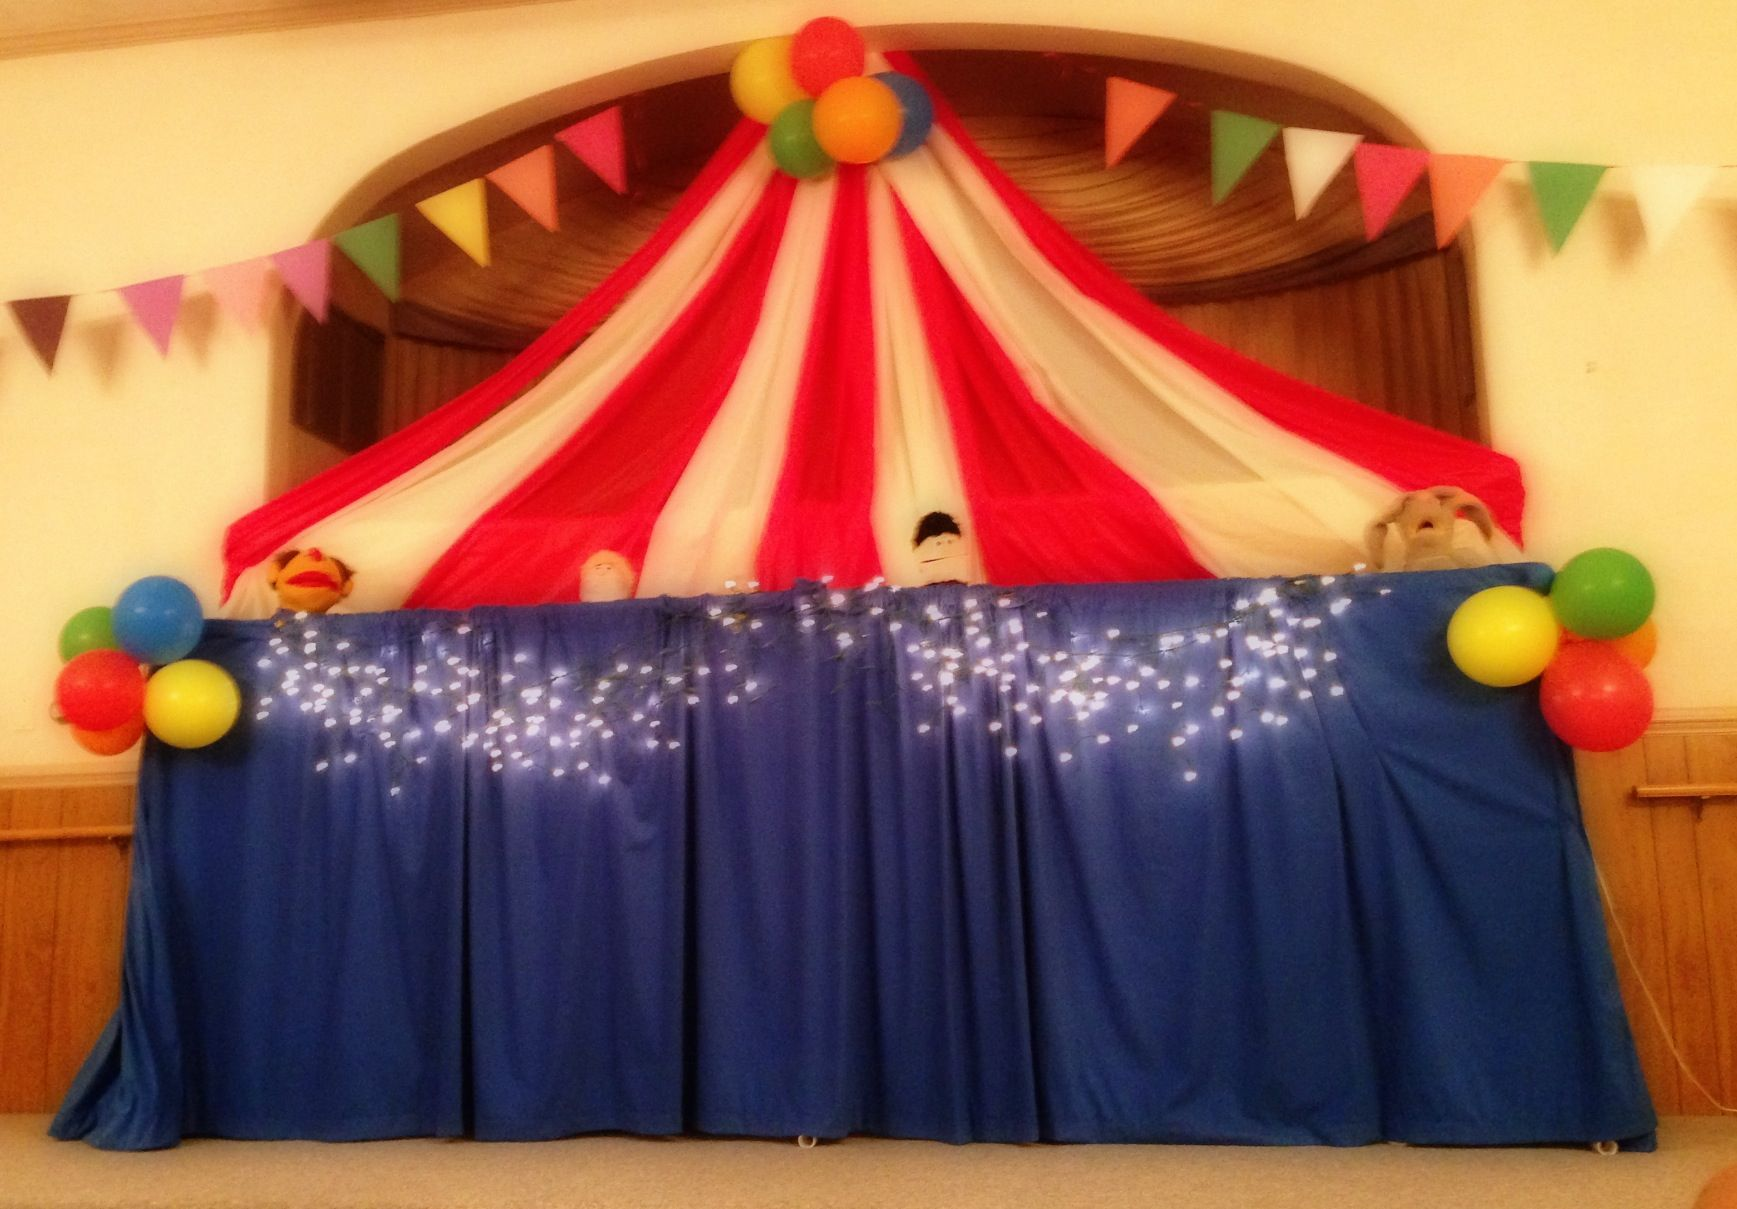 Plastic Tablecloths Make A Great Circus Tent Perfect For A